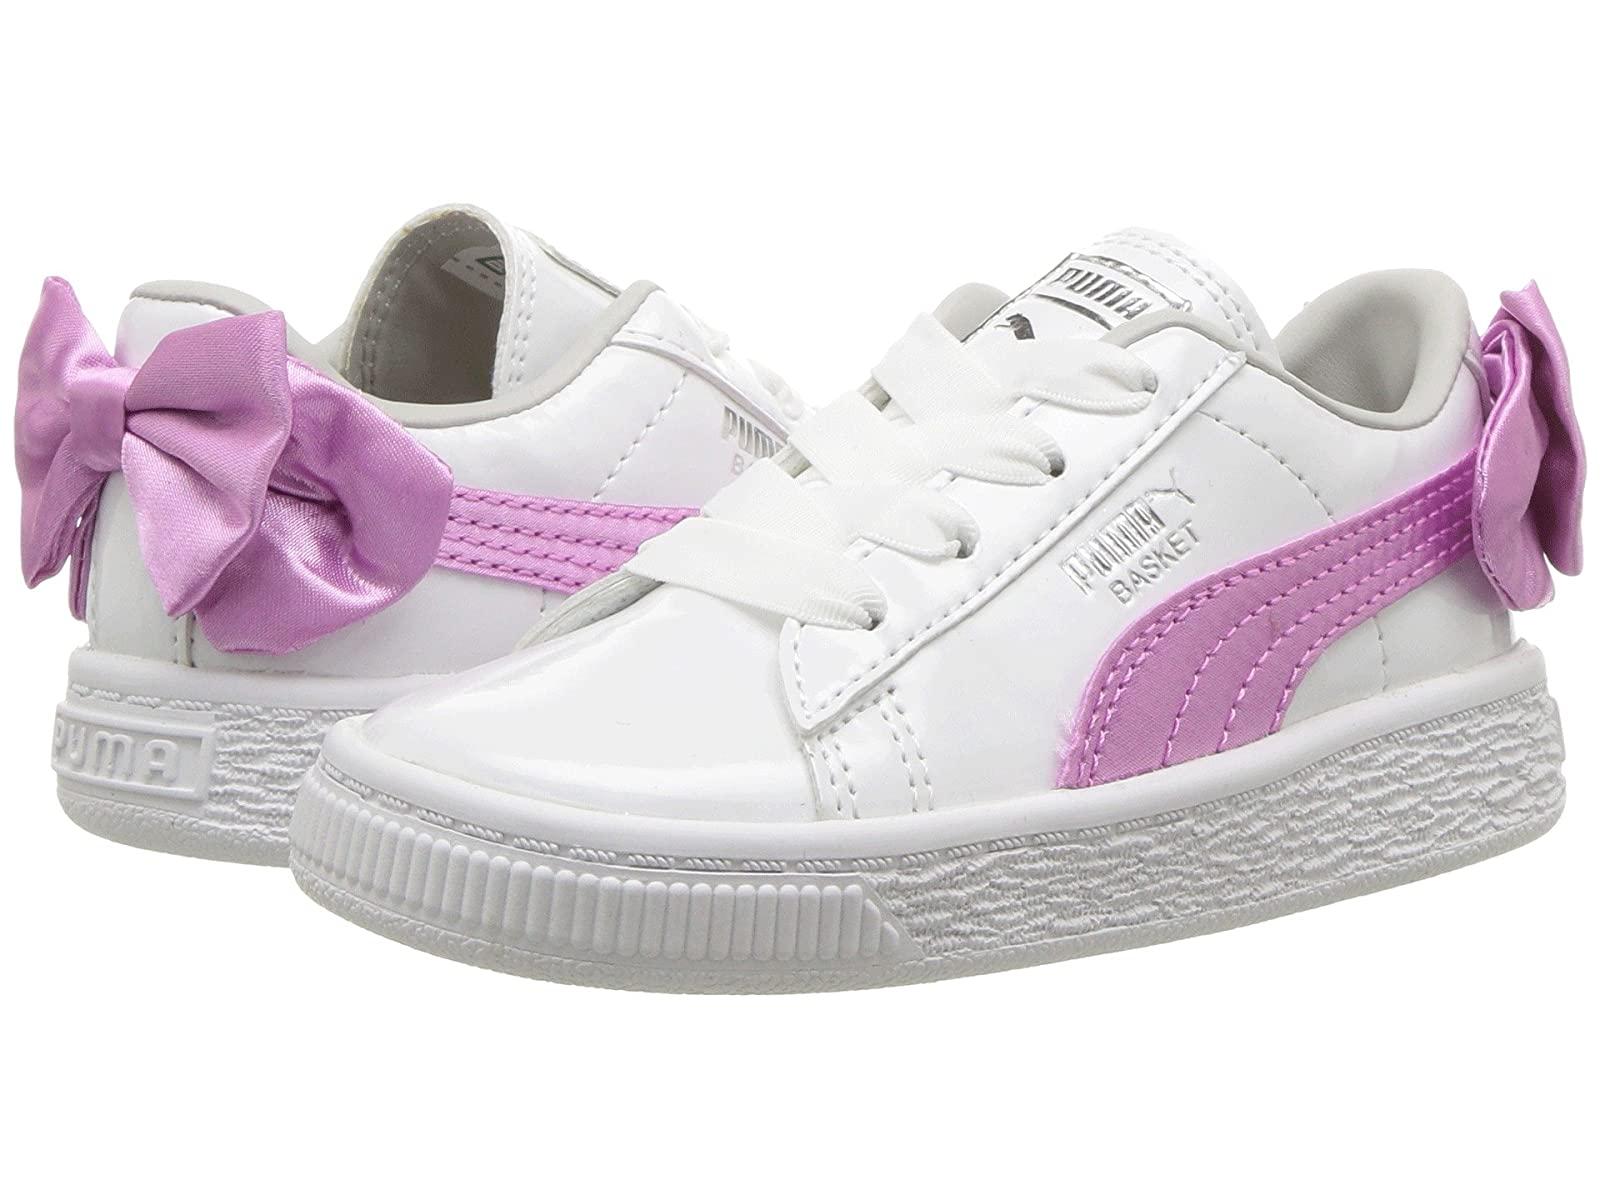 Puma Kids Basket Bow Patent AC (Toddler)Atmospheric grades have affordable shoes